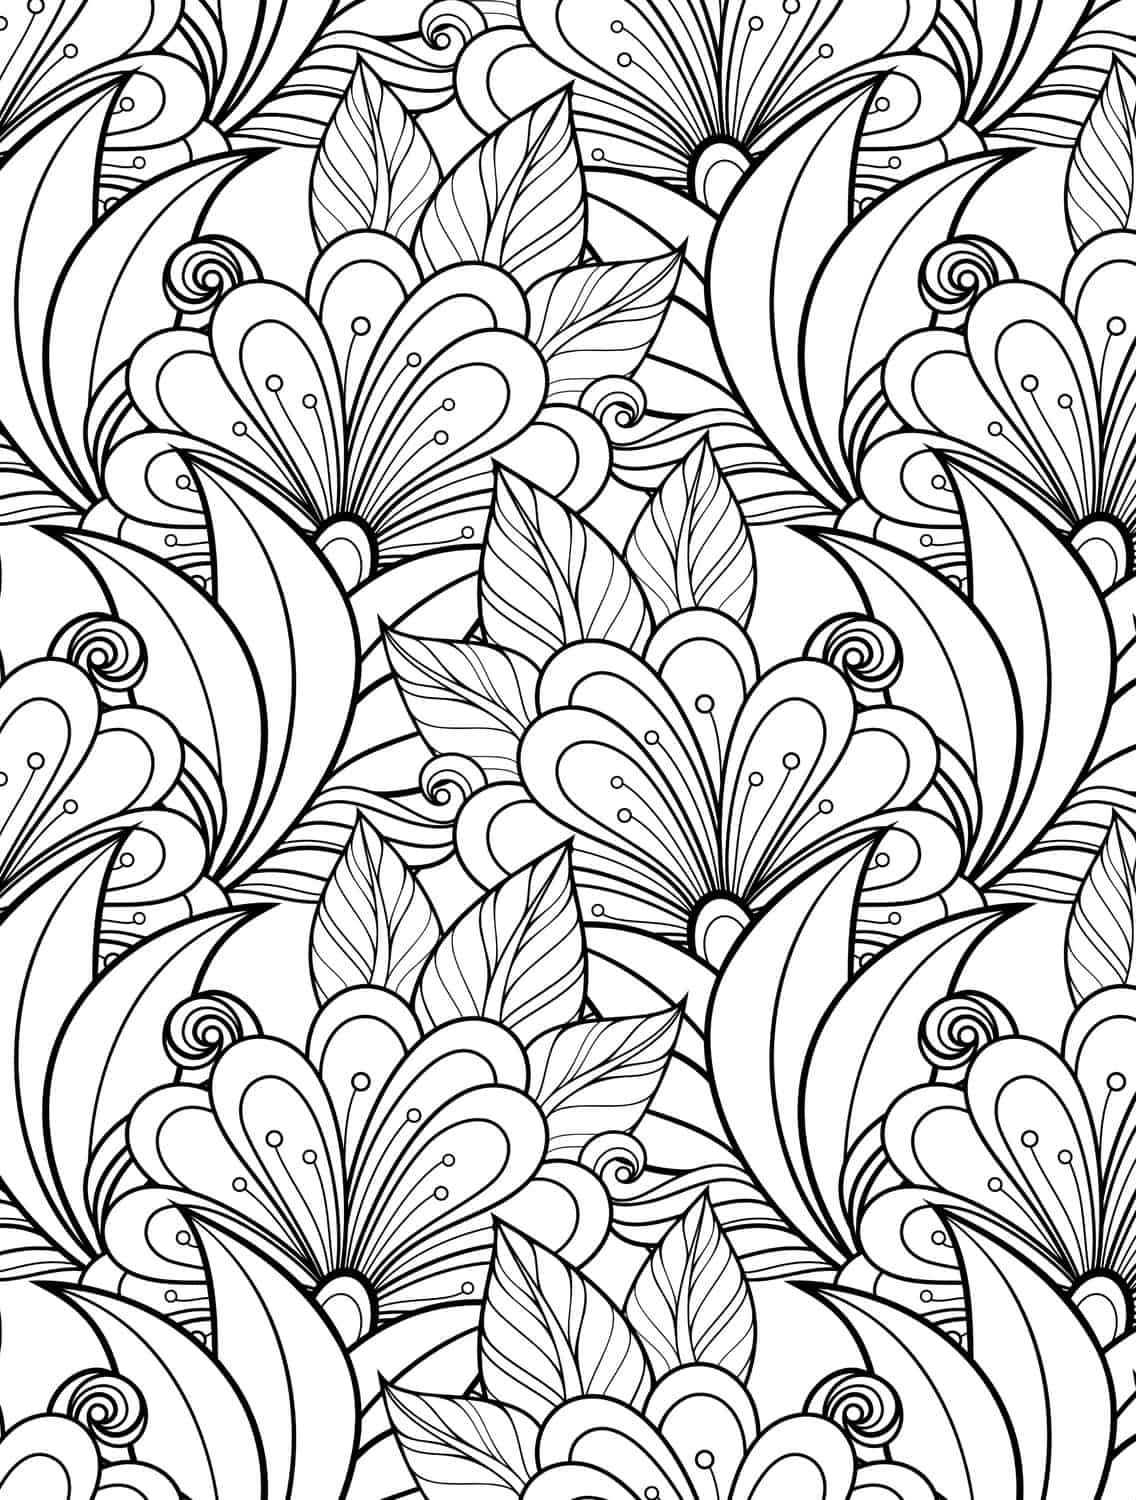 24 more free printable adult coloring pages page 7 of 25 nerdy